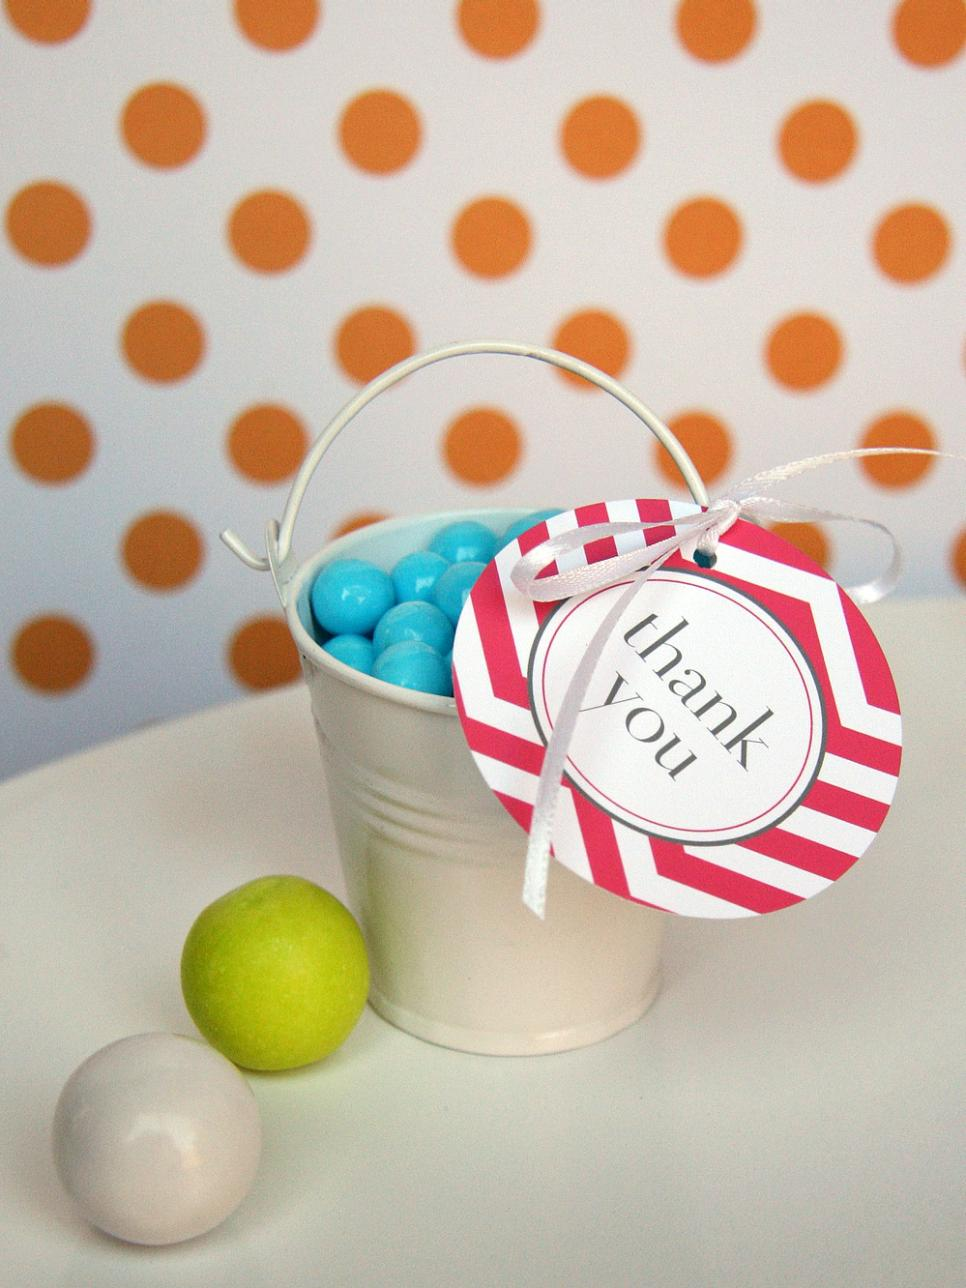 Buckets of bubblegum diy favor